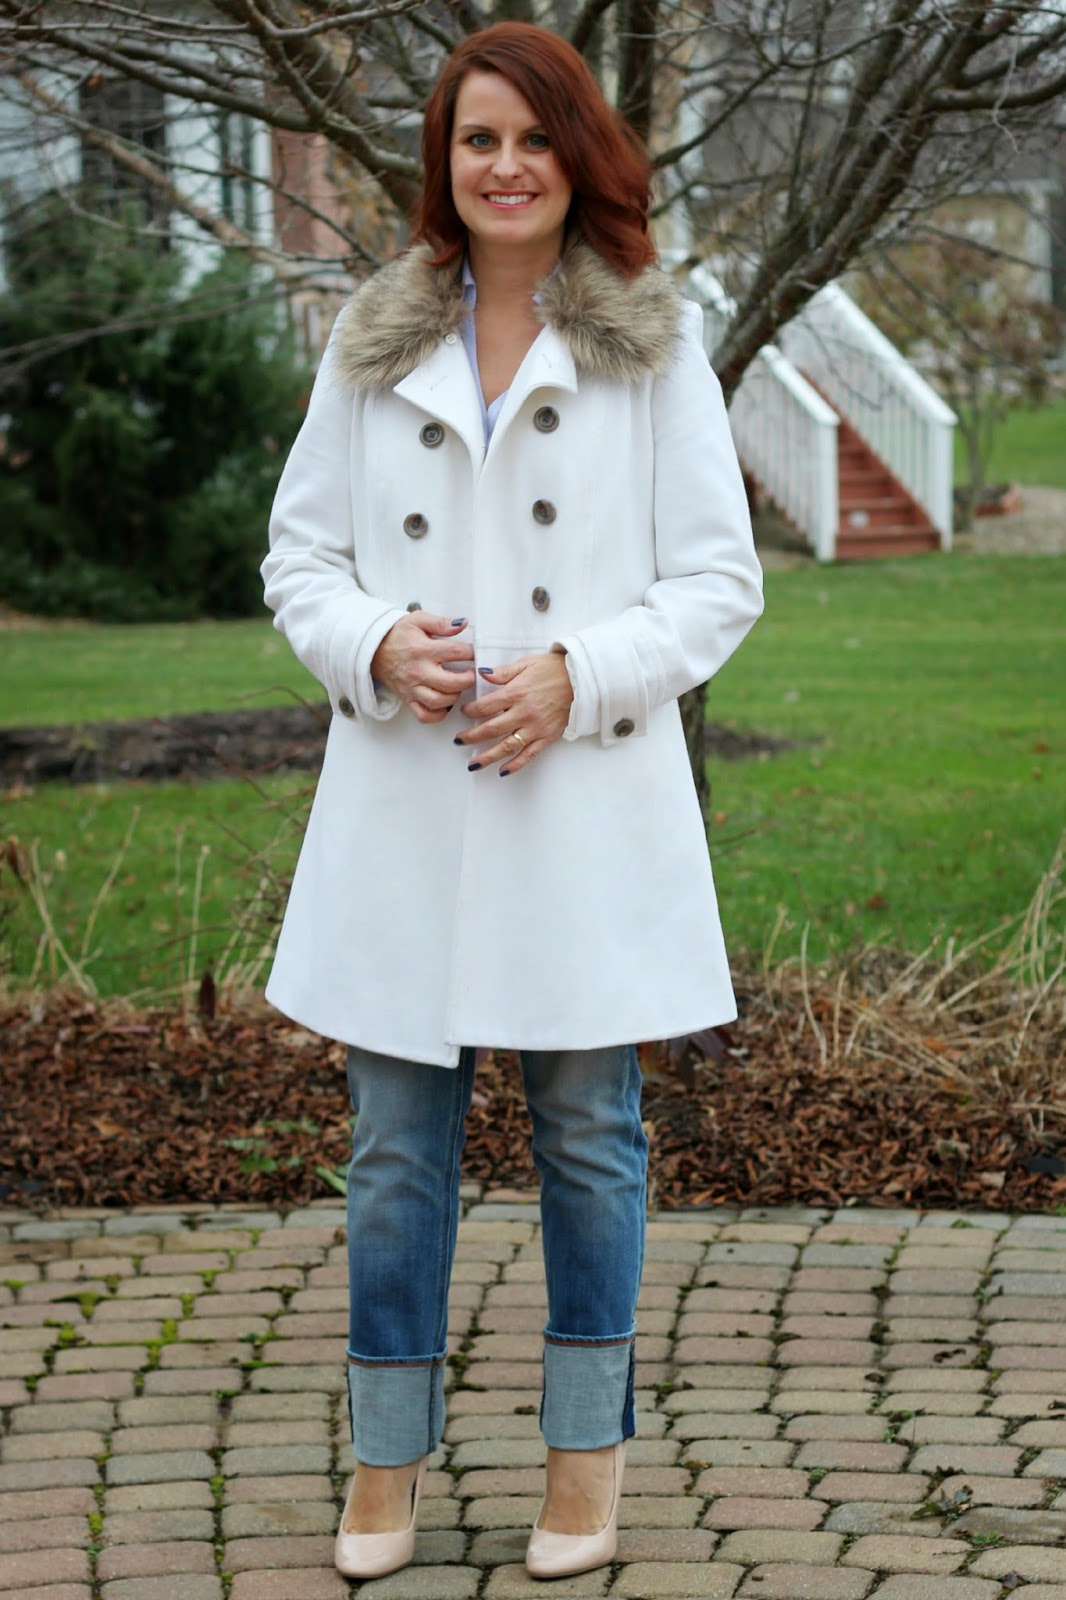 White coat with faux fur collar, lilac blouse, j crew jeans, nude heels, winter look, winter outfit